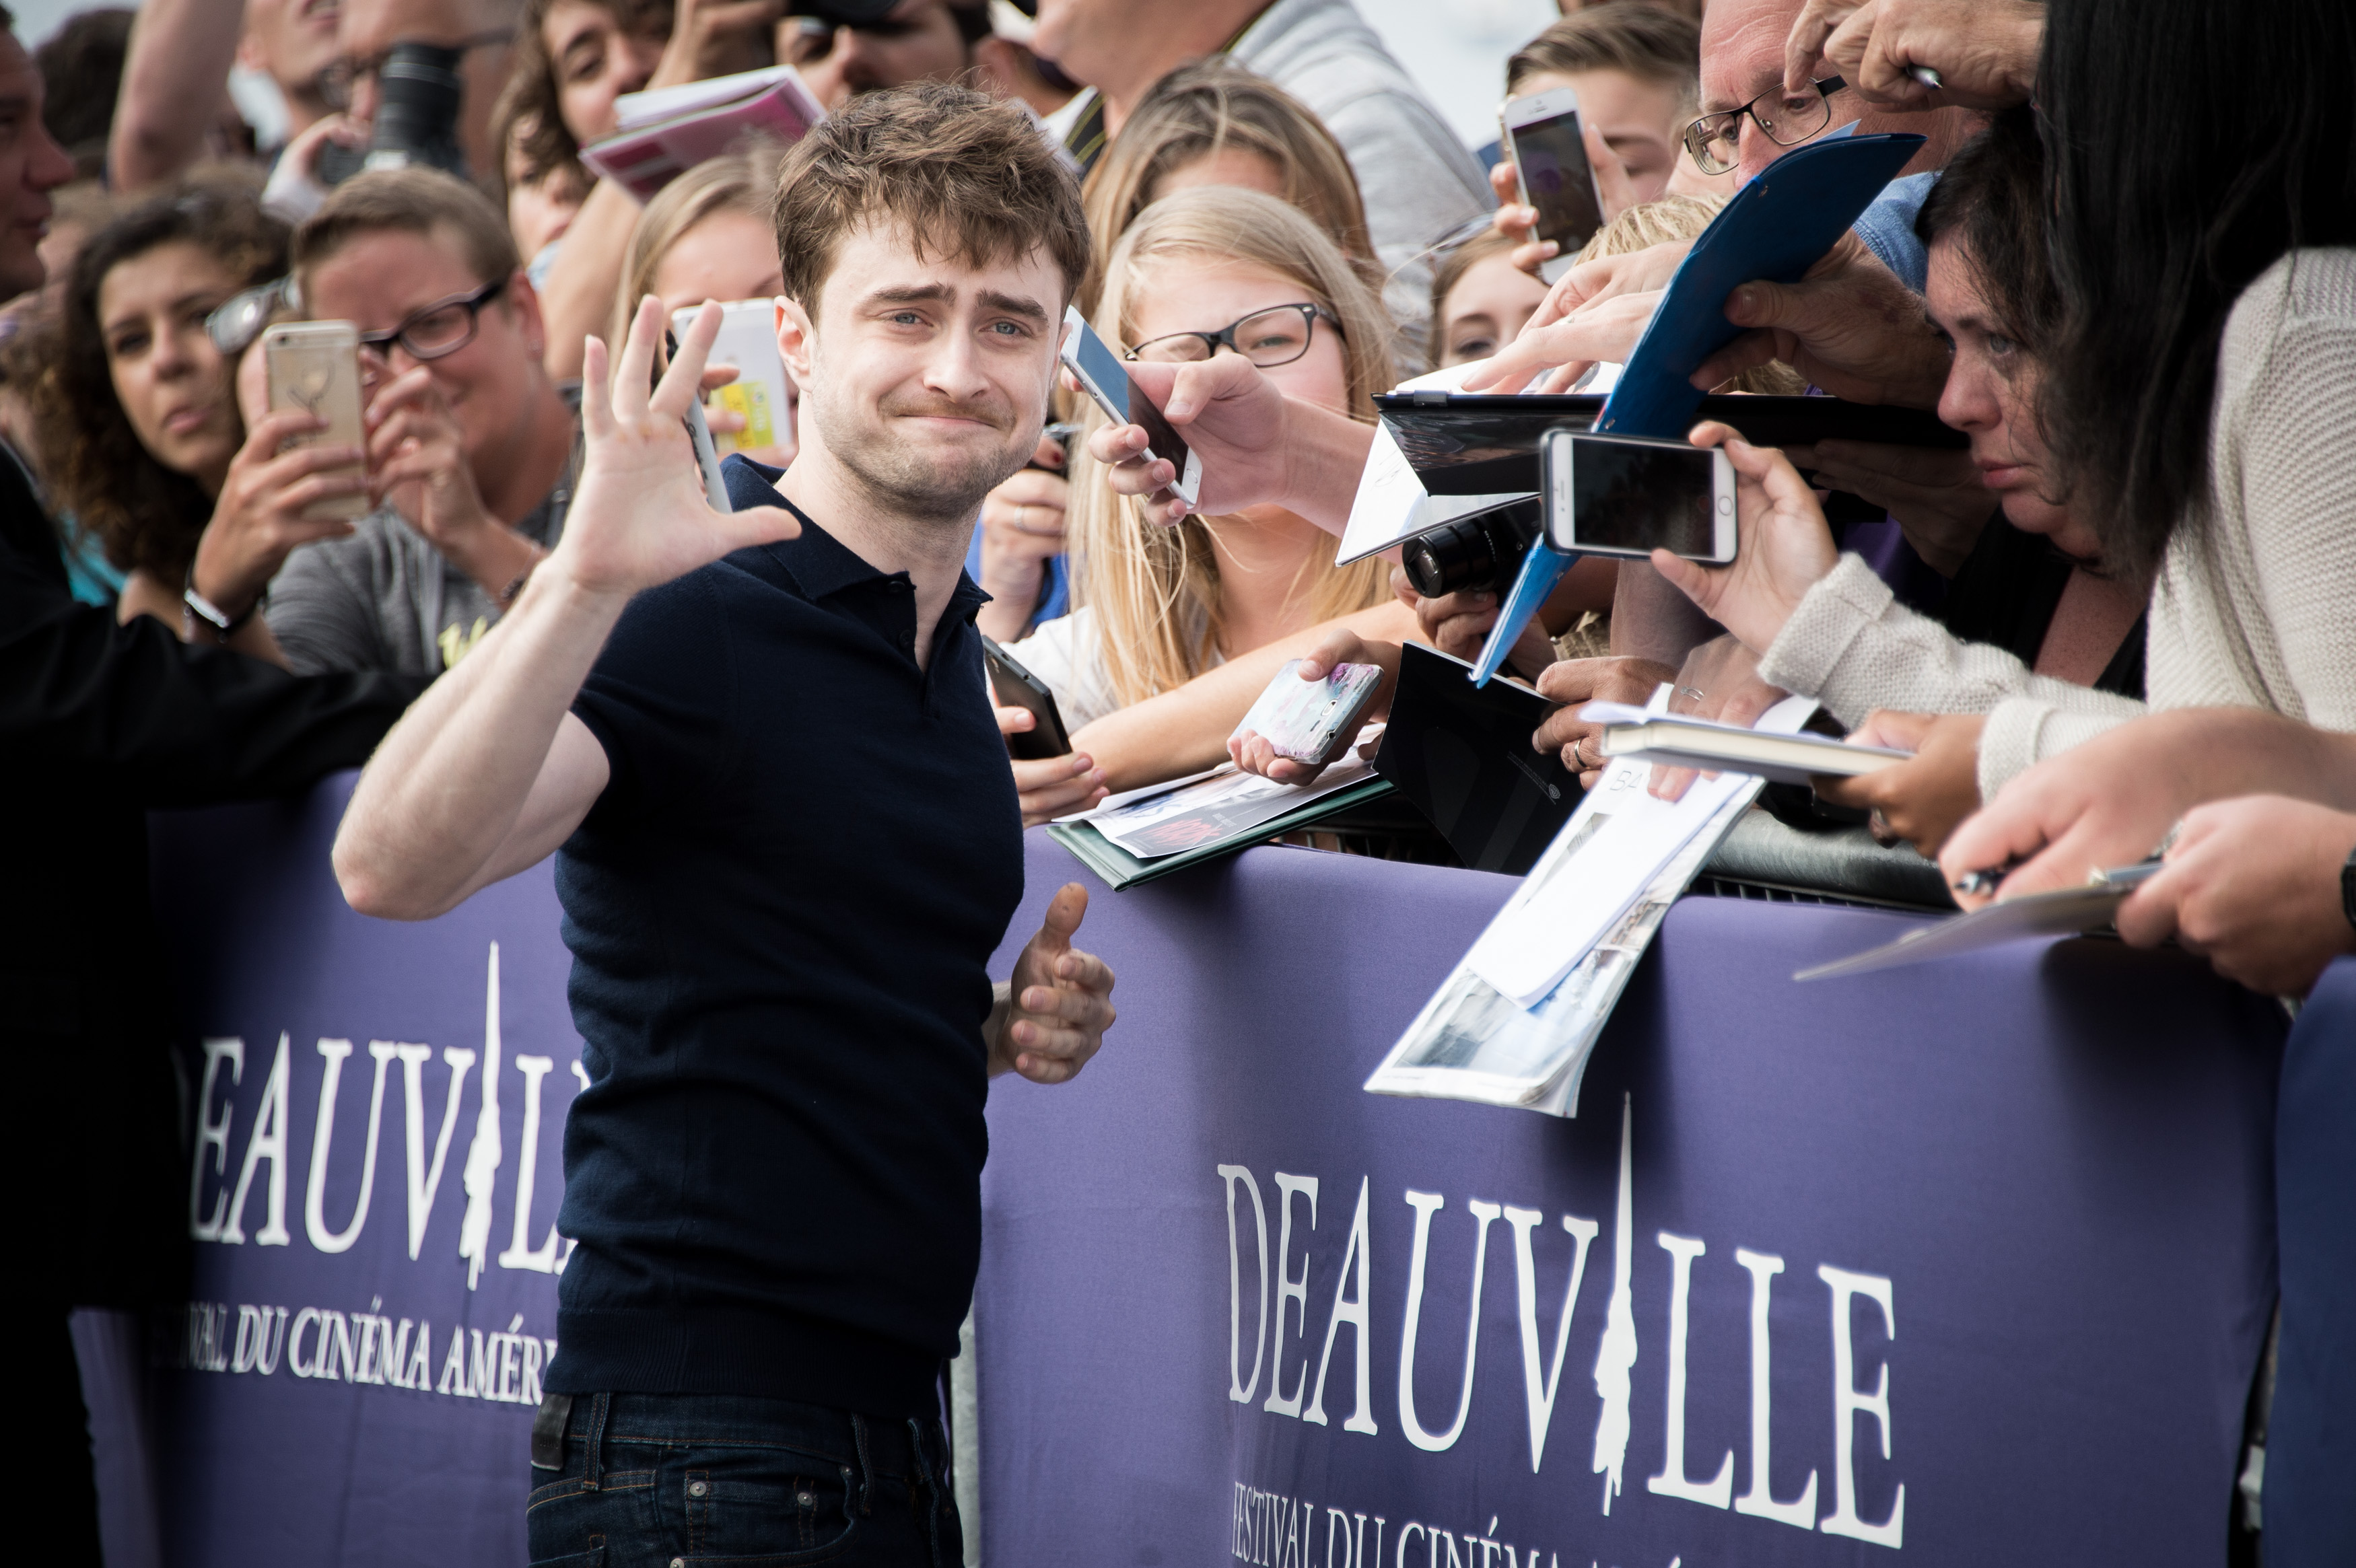 Daniel Radcliffe talked about playing Harry Potter again and it's messing with our emotions